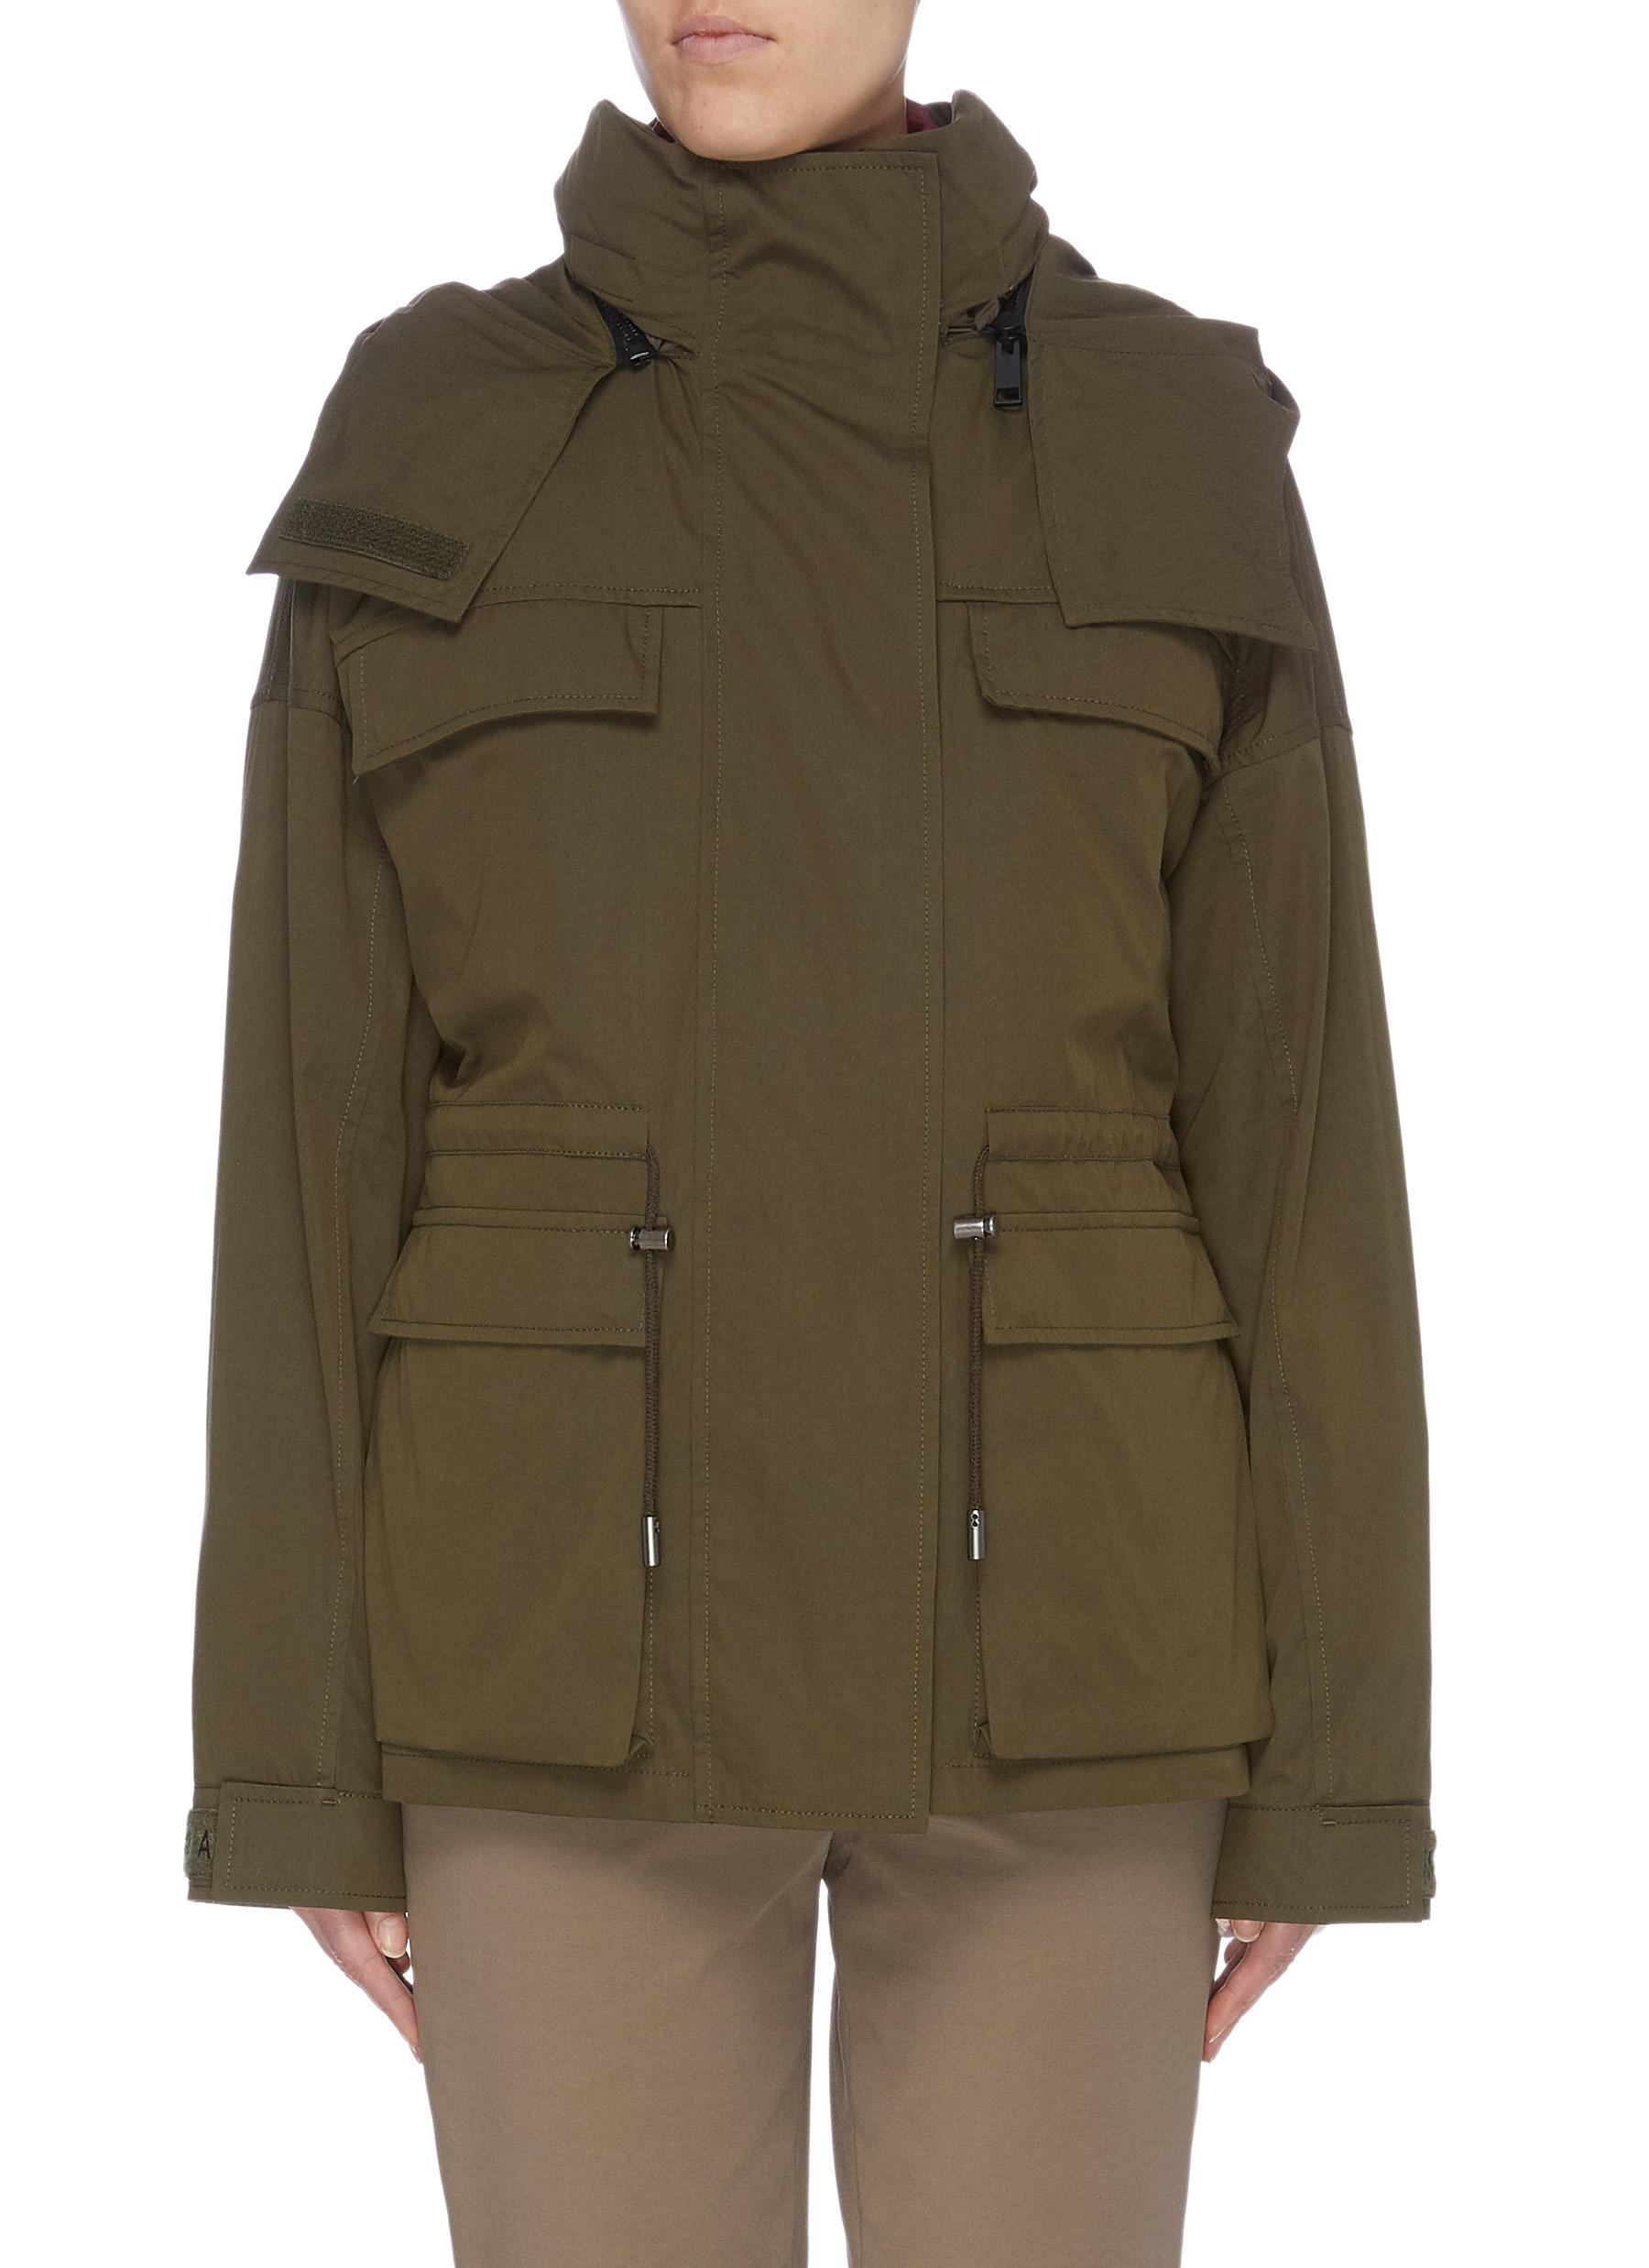 Bachette reversible metallic panelled padded jacket by Army By Yves Salomon